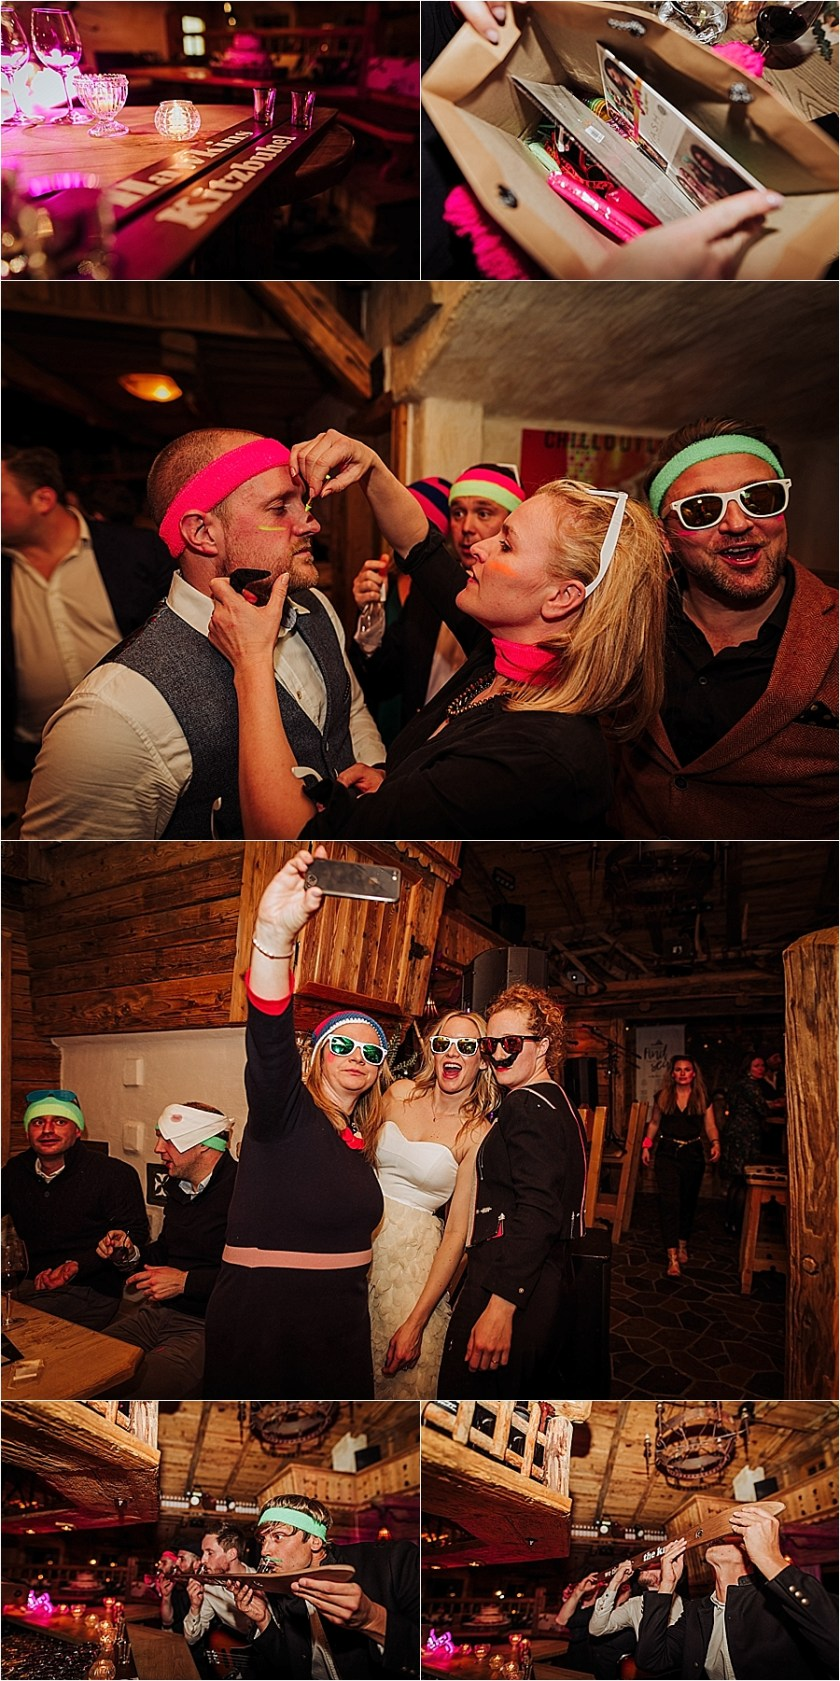 Neon headbands and sunglasses for an 80s inspired apres ski wedding in the Alps by Wild Connections Photography